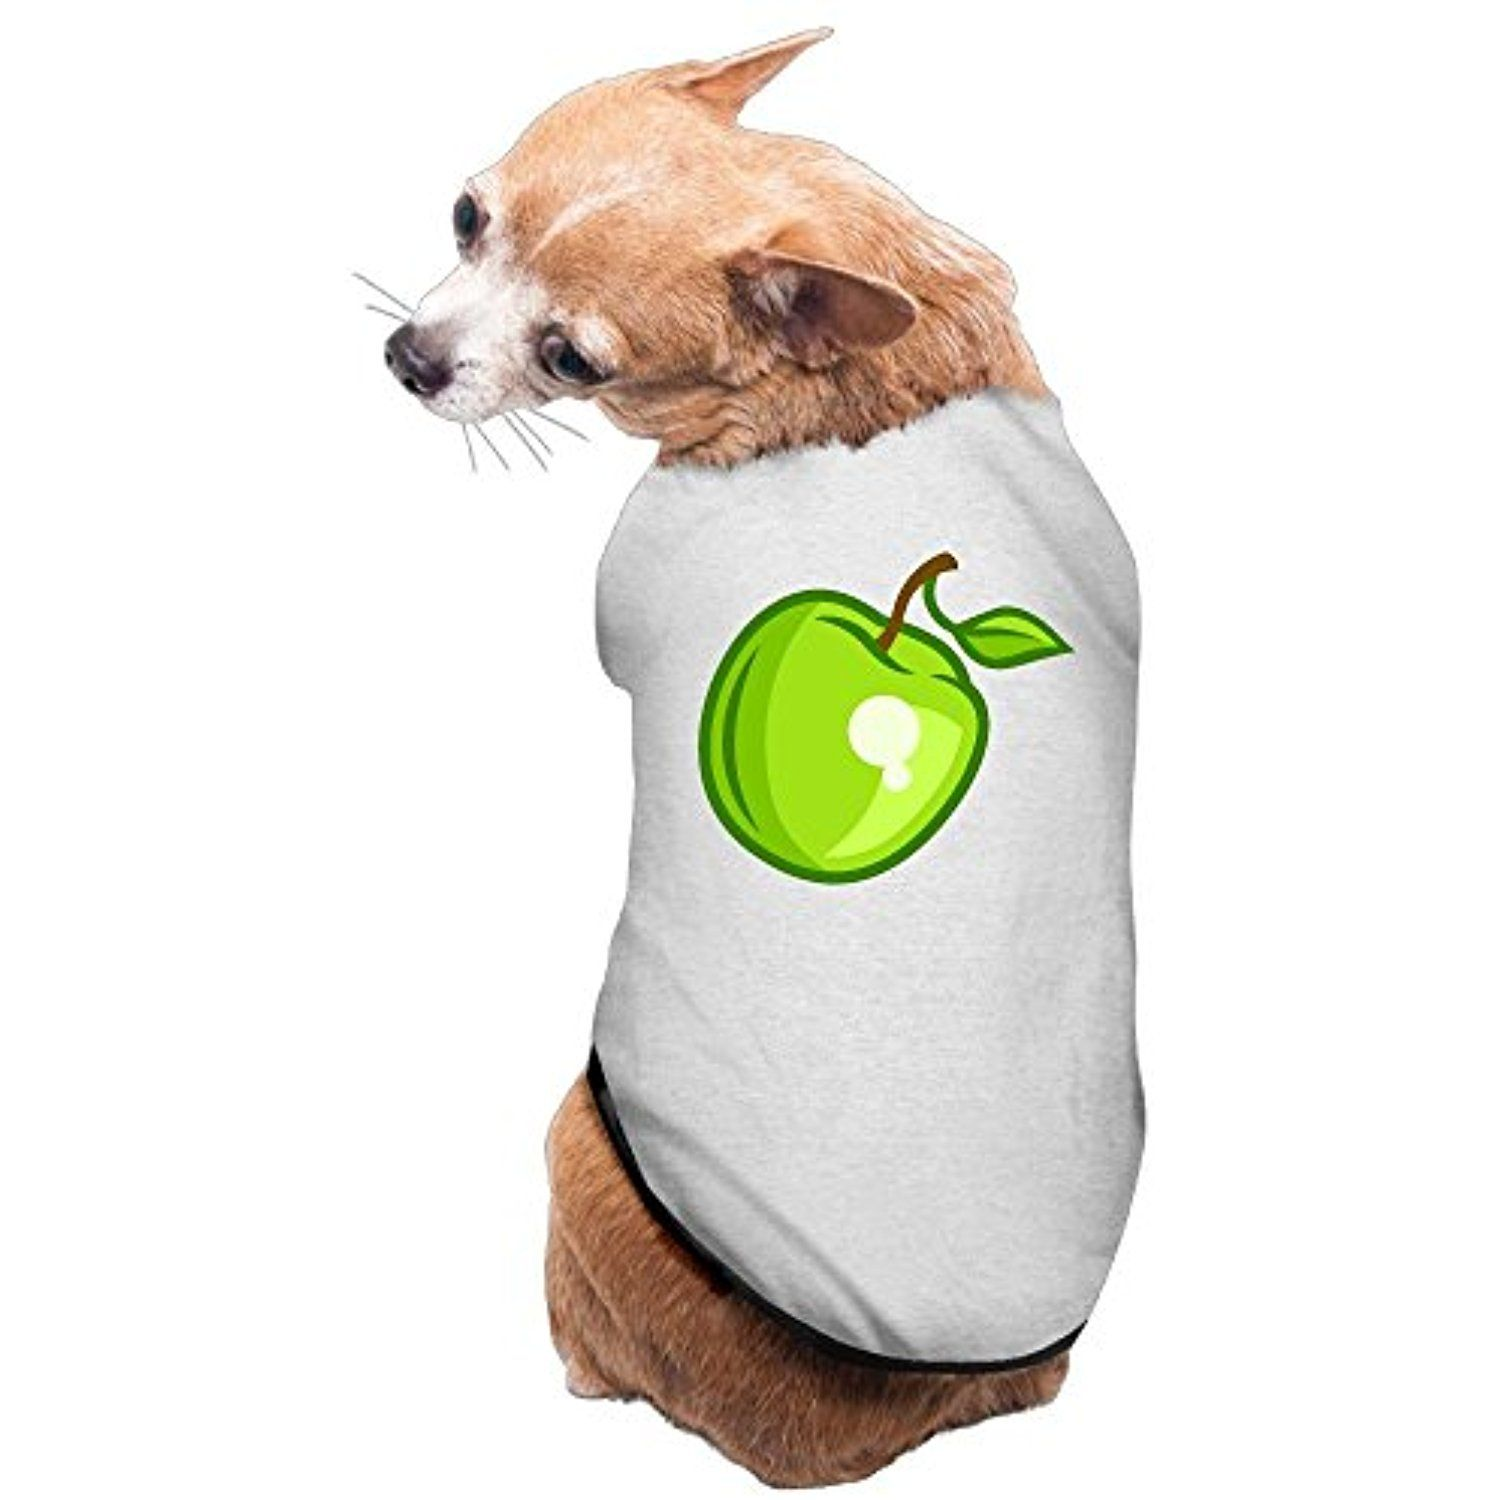 Apple Dog Shirt Clothes For Pet Puppy Tee Shirts Dogs Costumes Cat